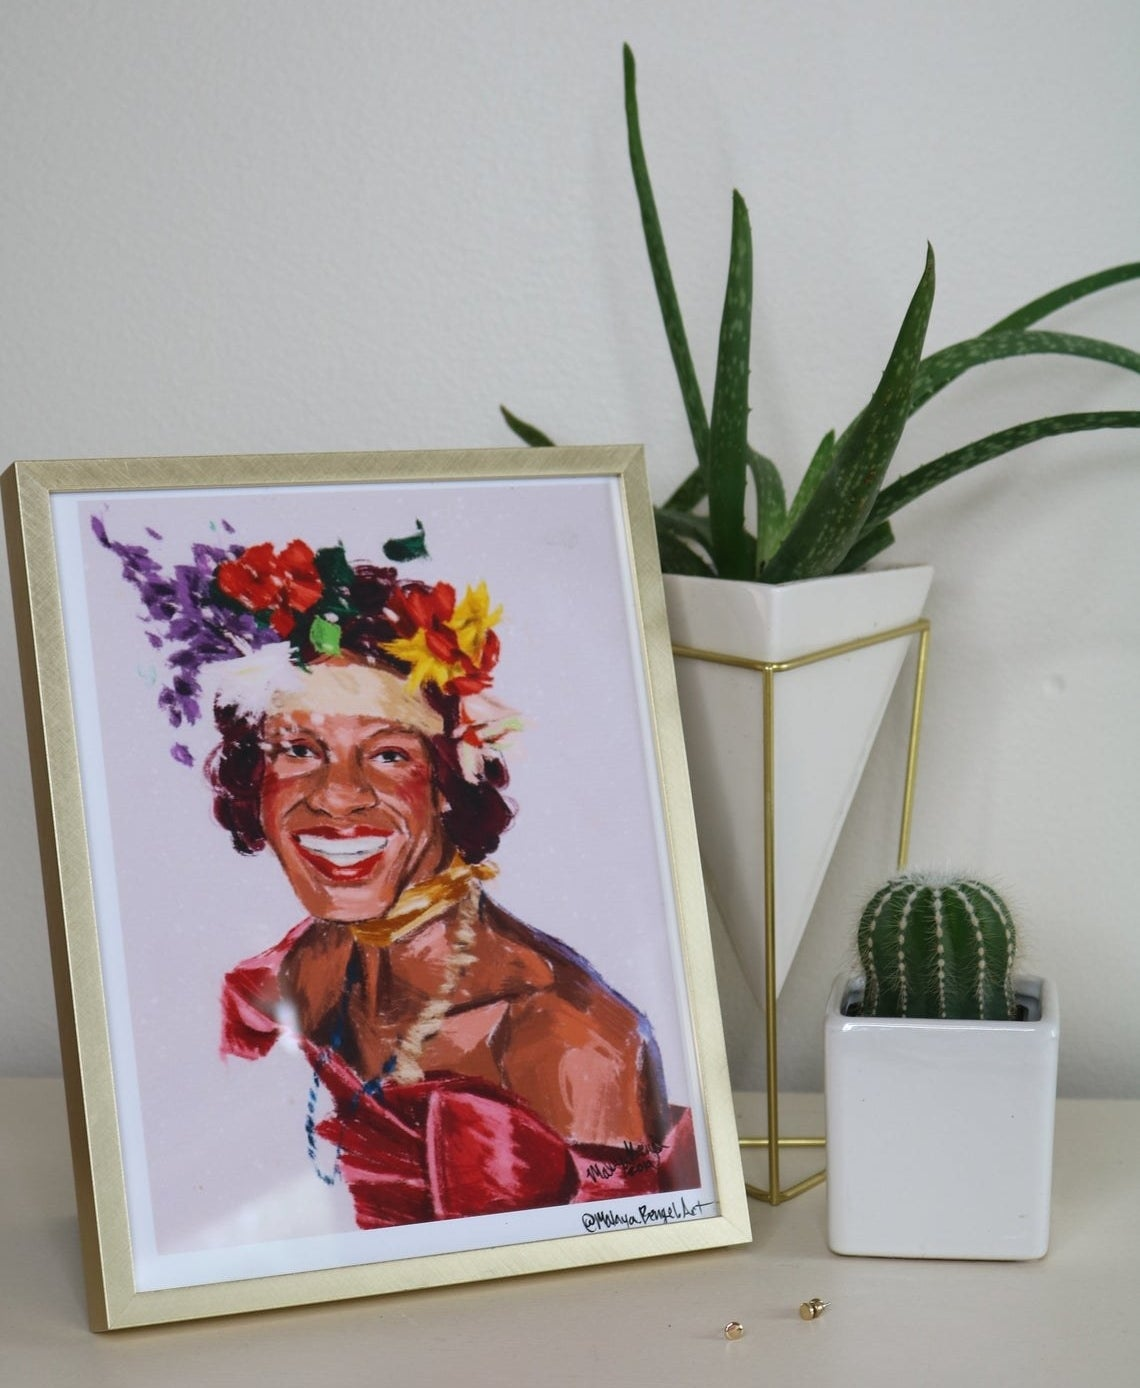 A colorful painted print of Marsha P. Johnson wearing an evening gown, flower crown, and showing off her dazzling smile